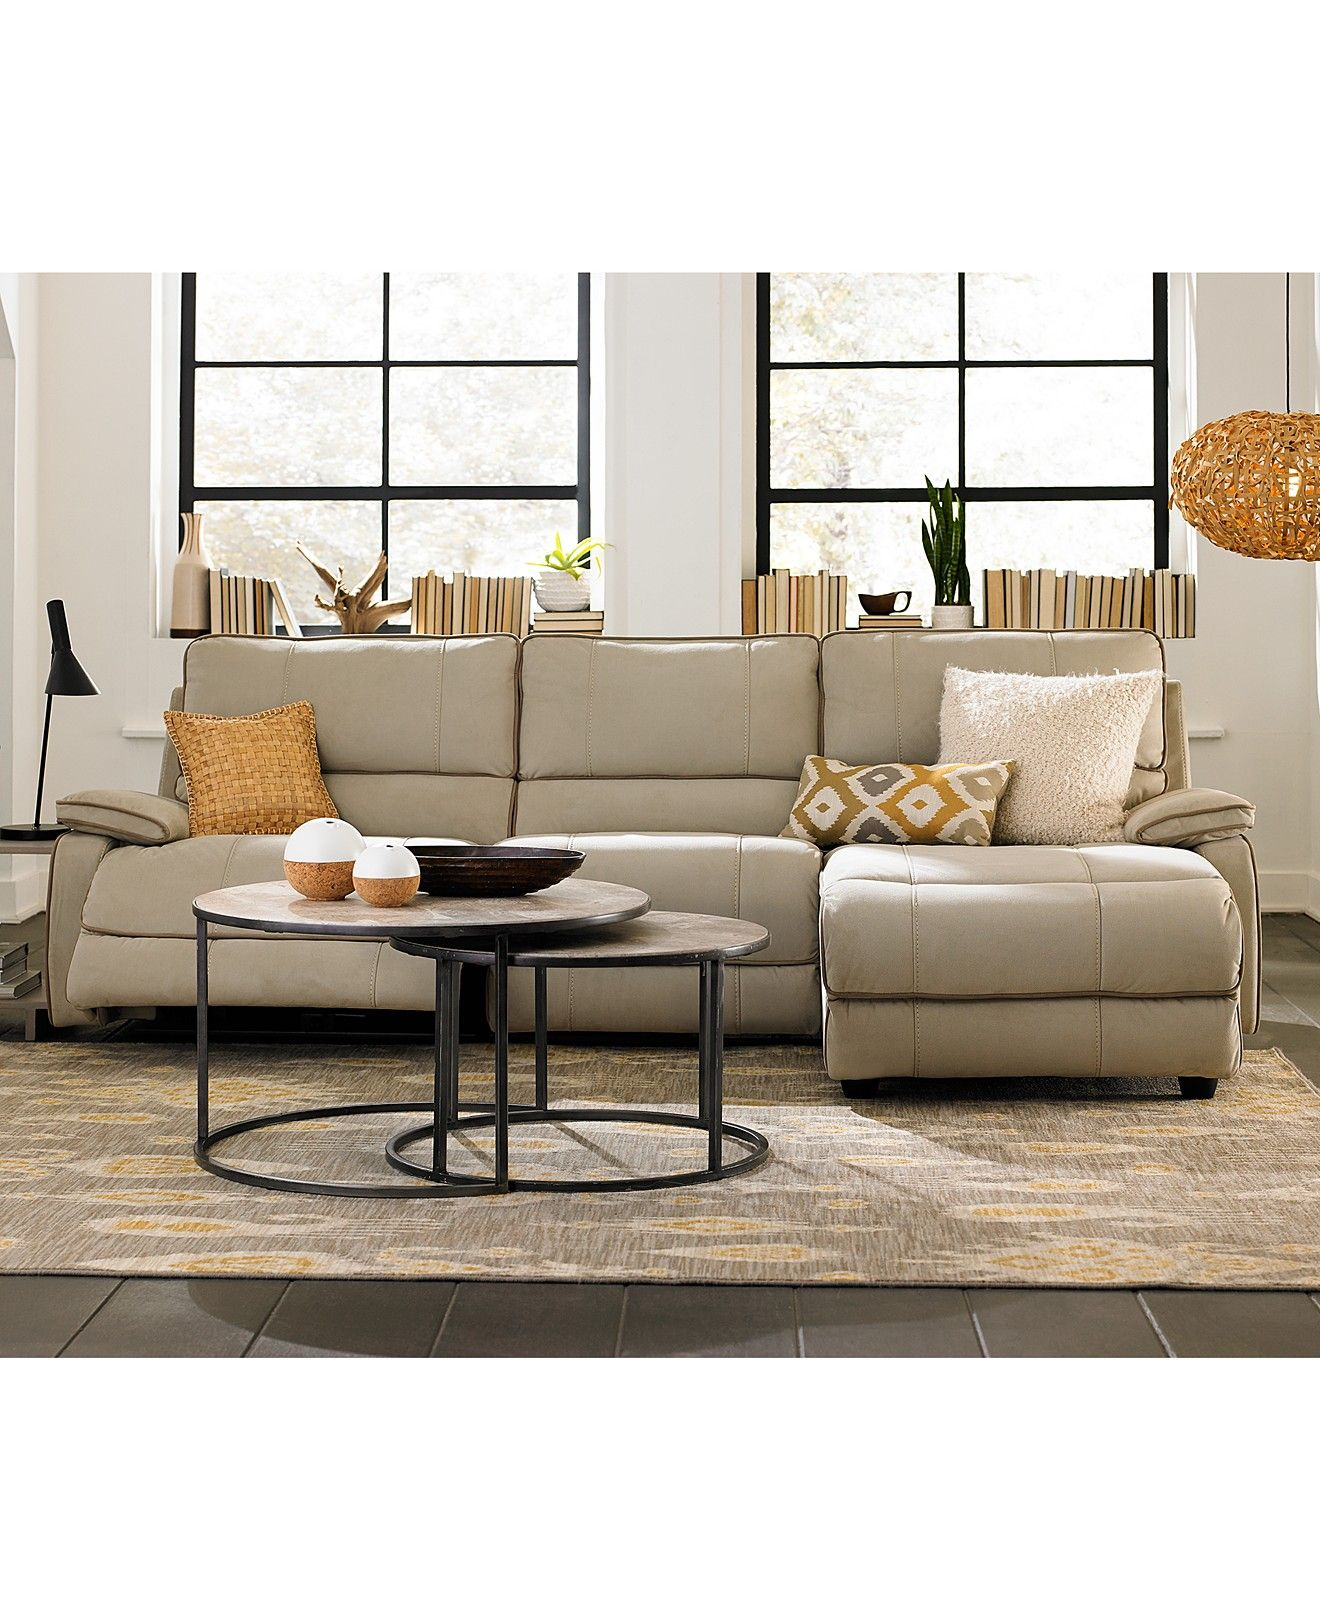 Cody Fabric Power Reclining Sectional Sofa Living Room Furniture